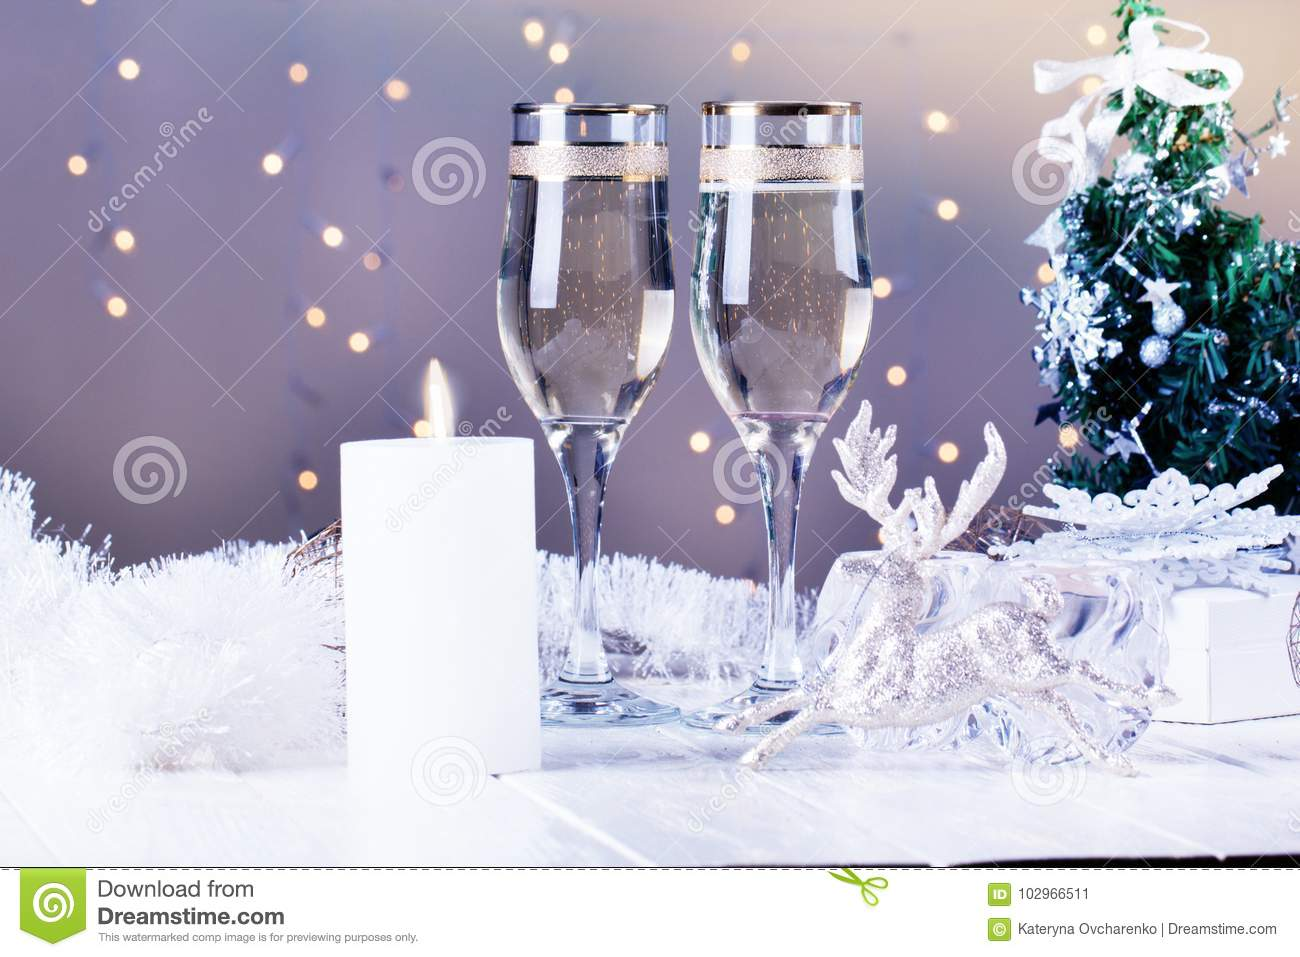 christmas and new year celebration with champagne new year holiday decorated table two champagne glasses